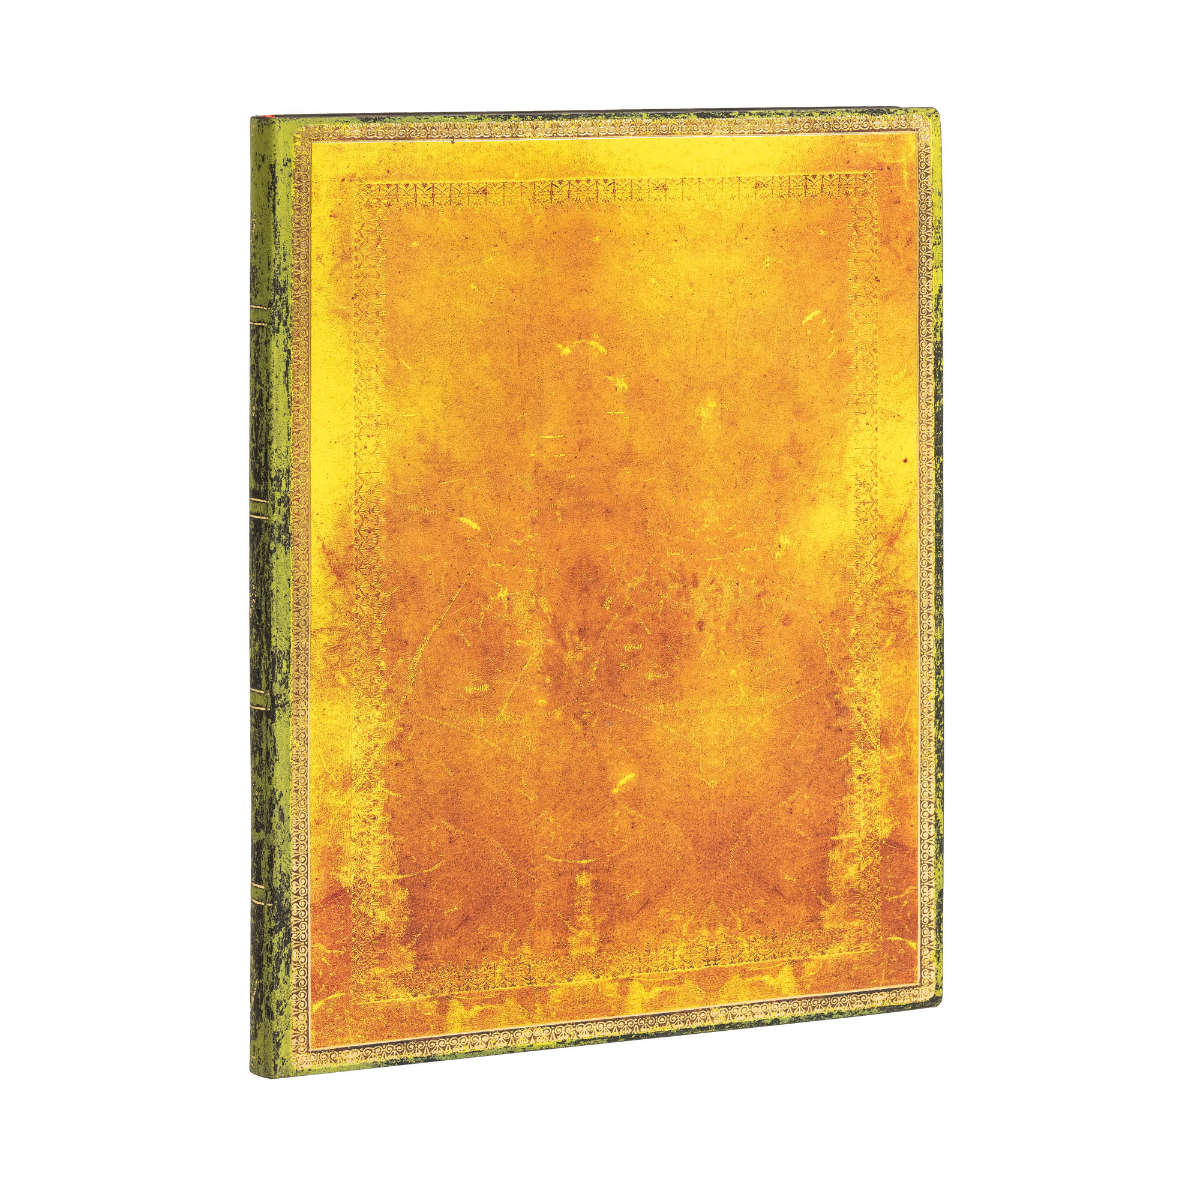 Paperblanks Flexis Old Leather Ochre Ultra 7x9 Inch, 176 Pages